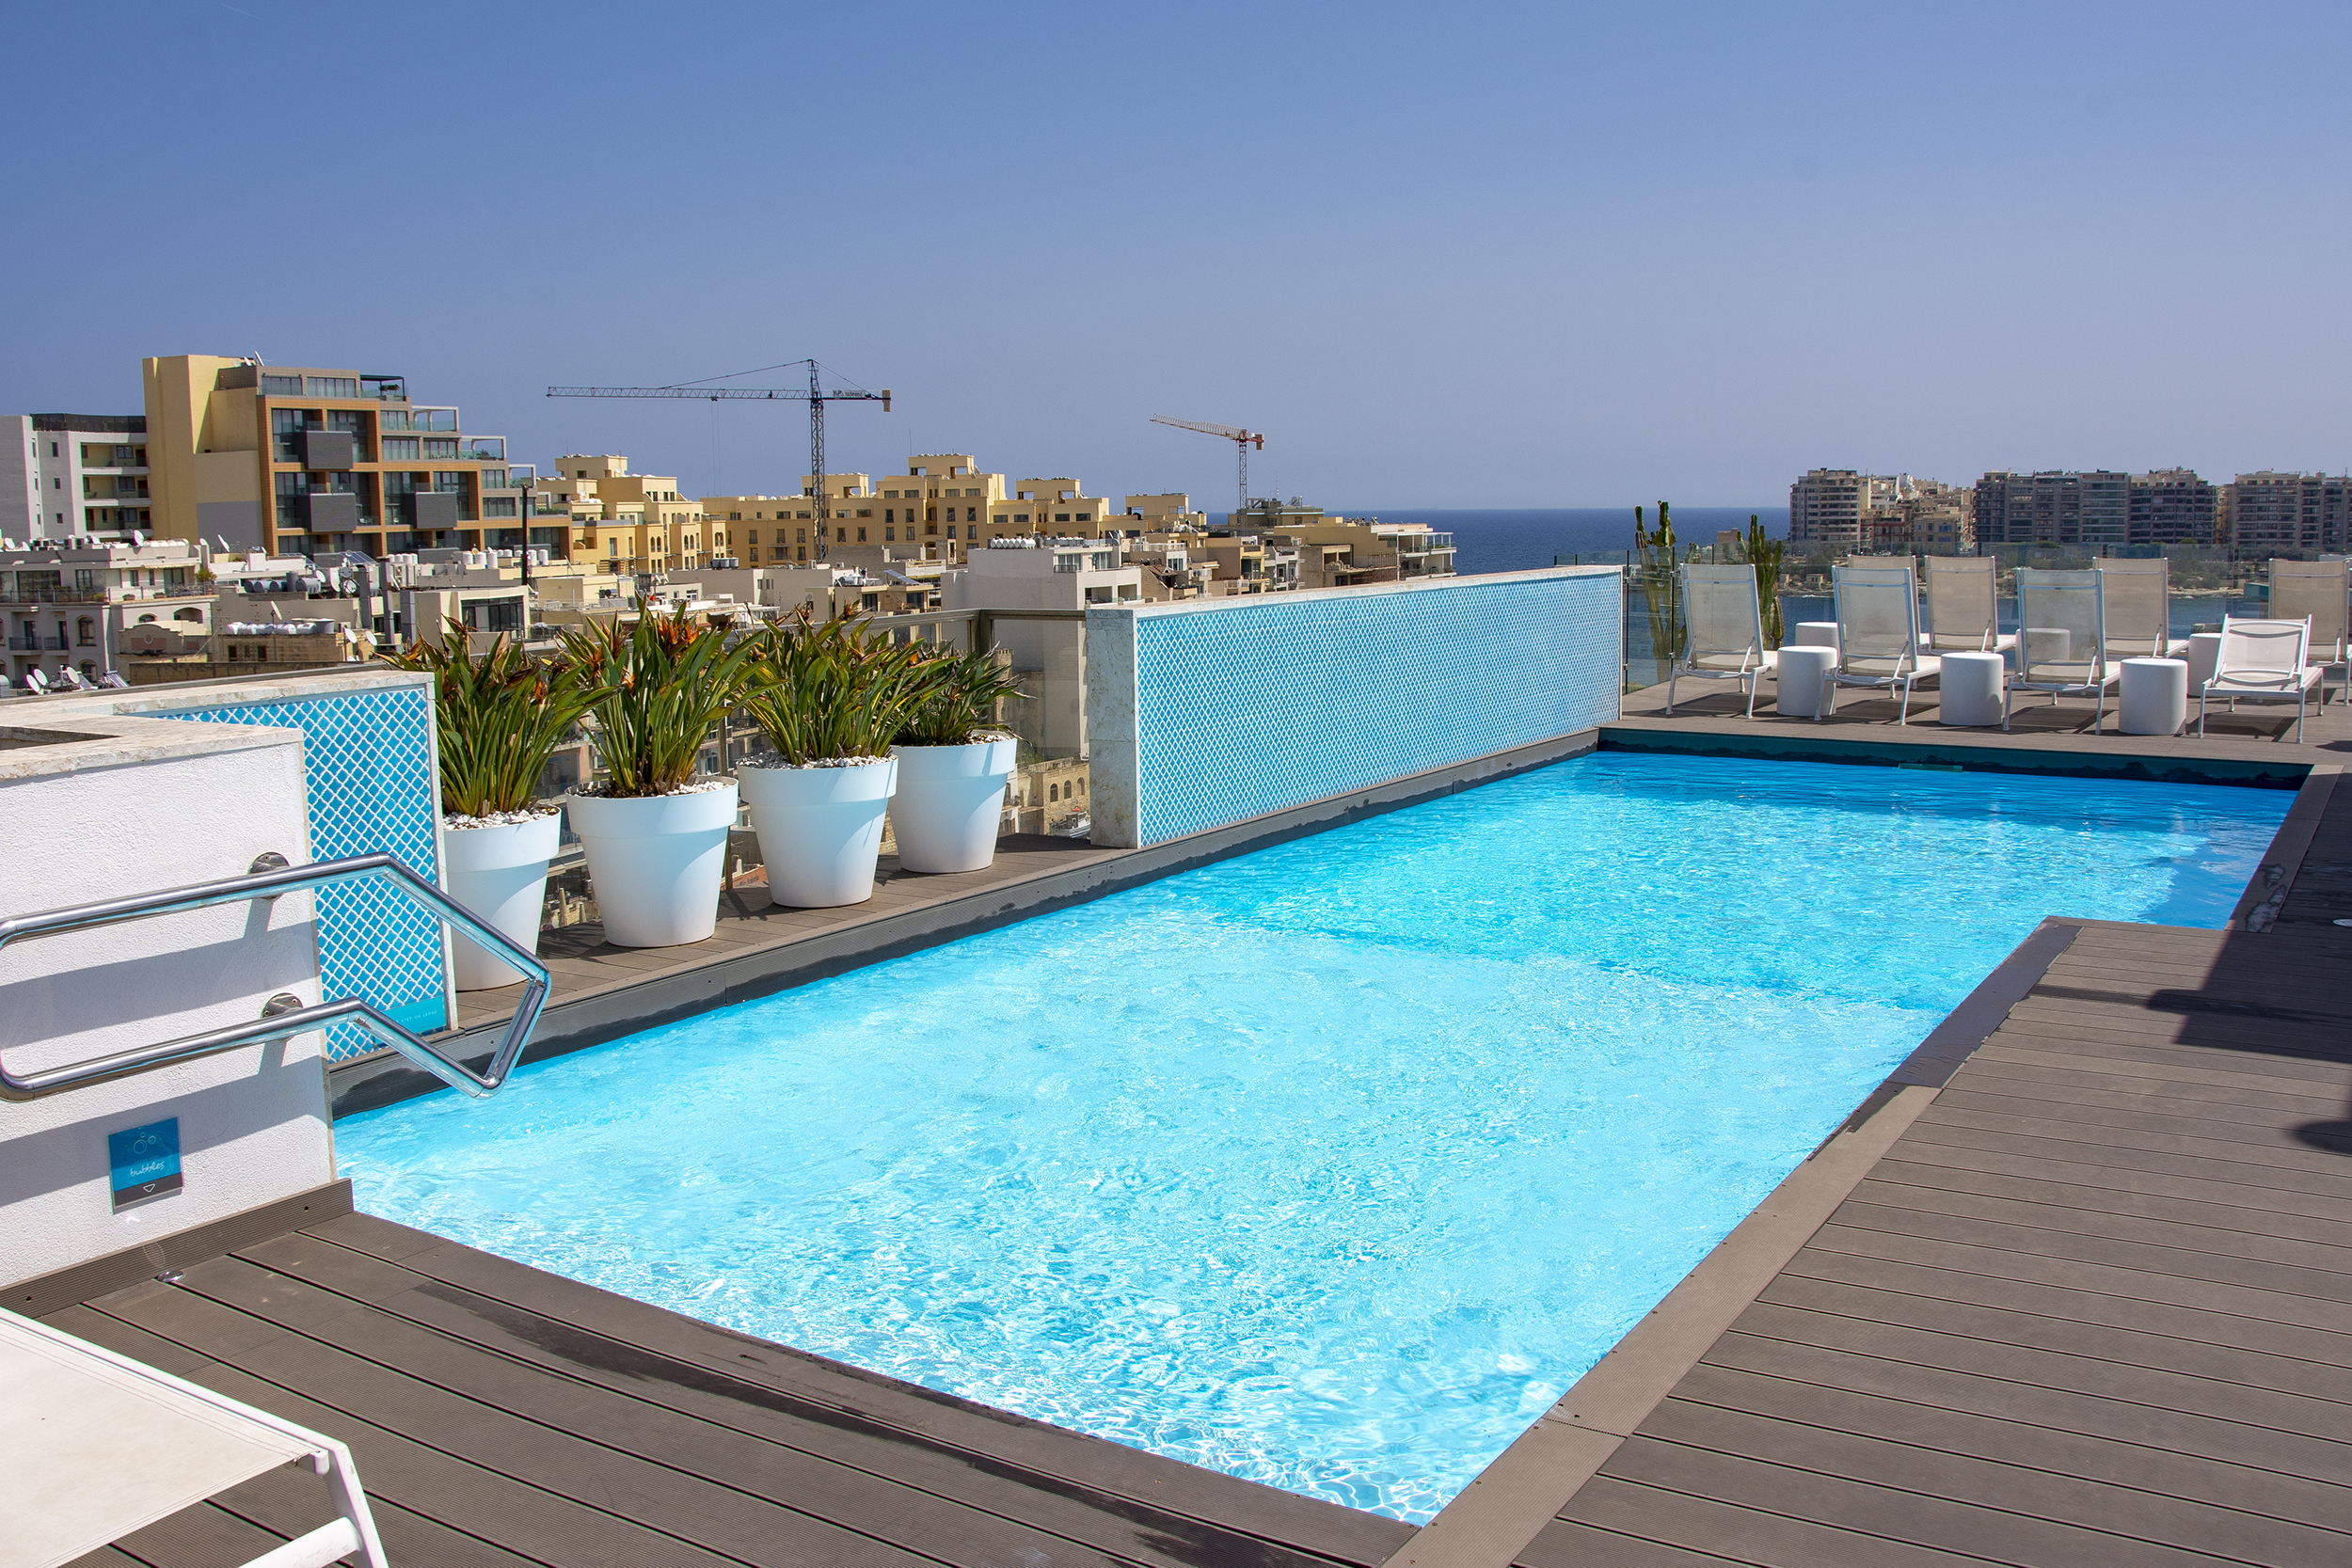 hotel juliani malta takpool